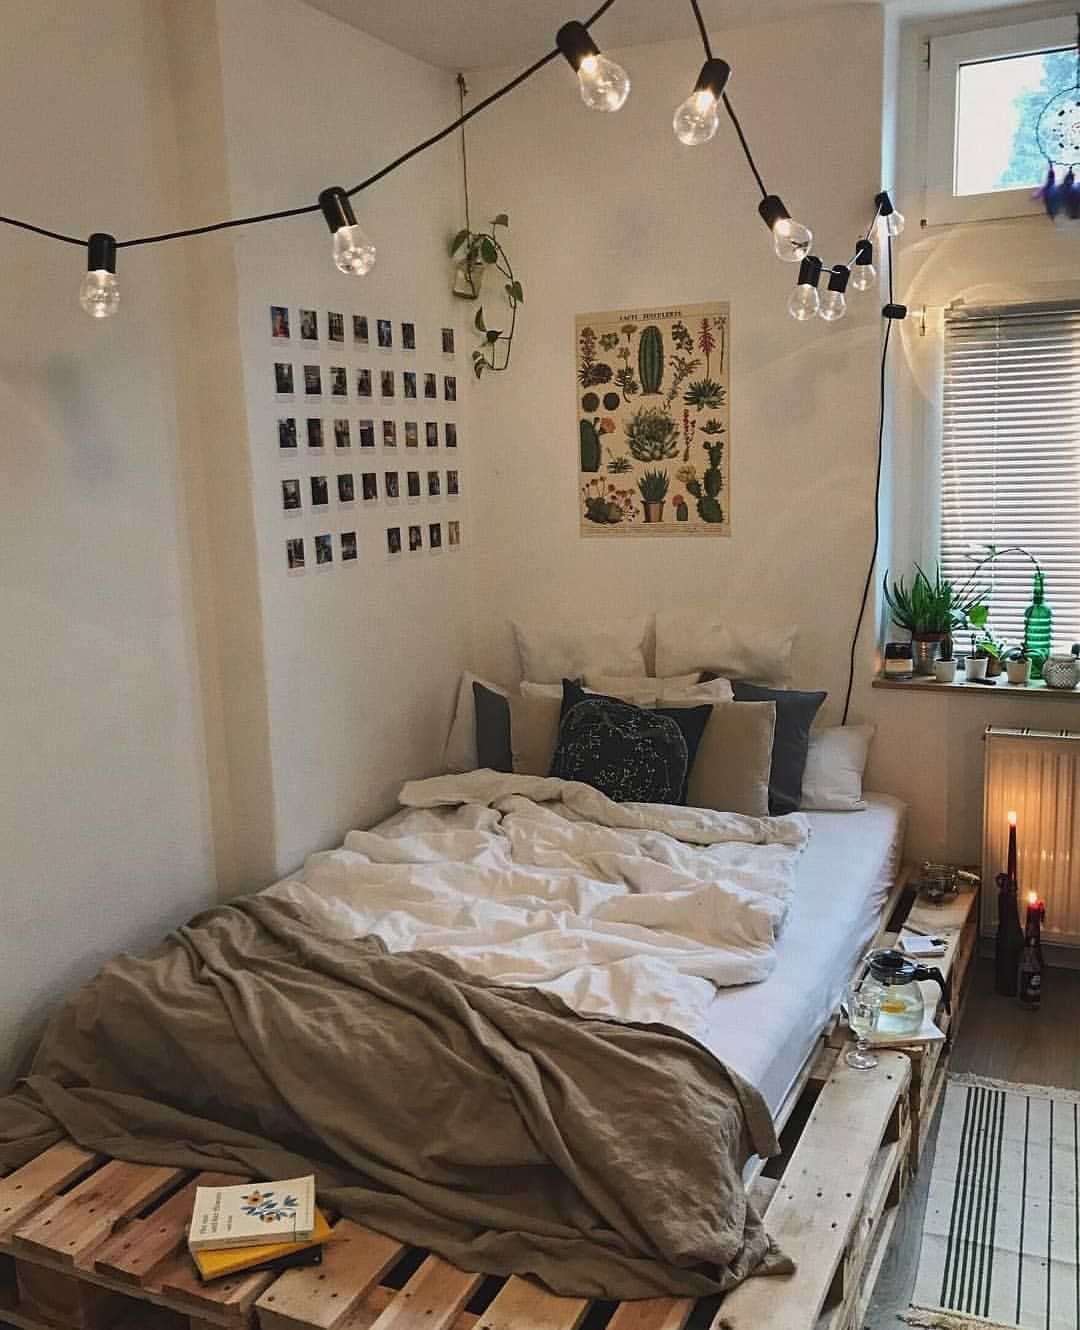 57 Cozy Diy Apartment Decor Ideas - DECOONA #apartmentroom